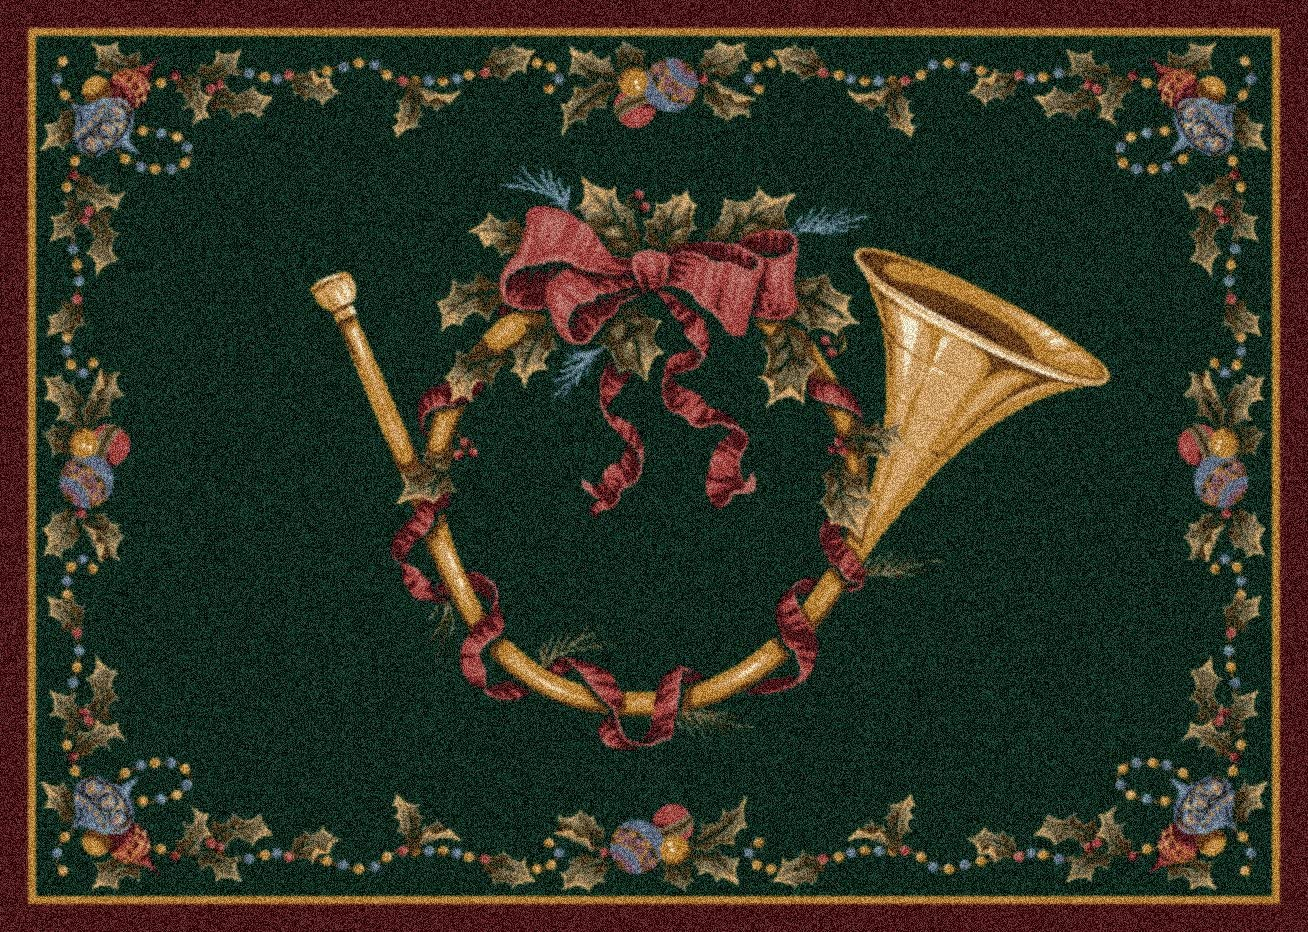 Milliken Holiday Collection French Horn, 5 4 X7 8 Rectangle, Garland